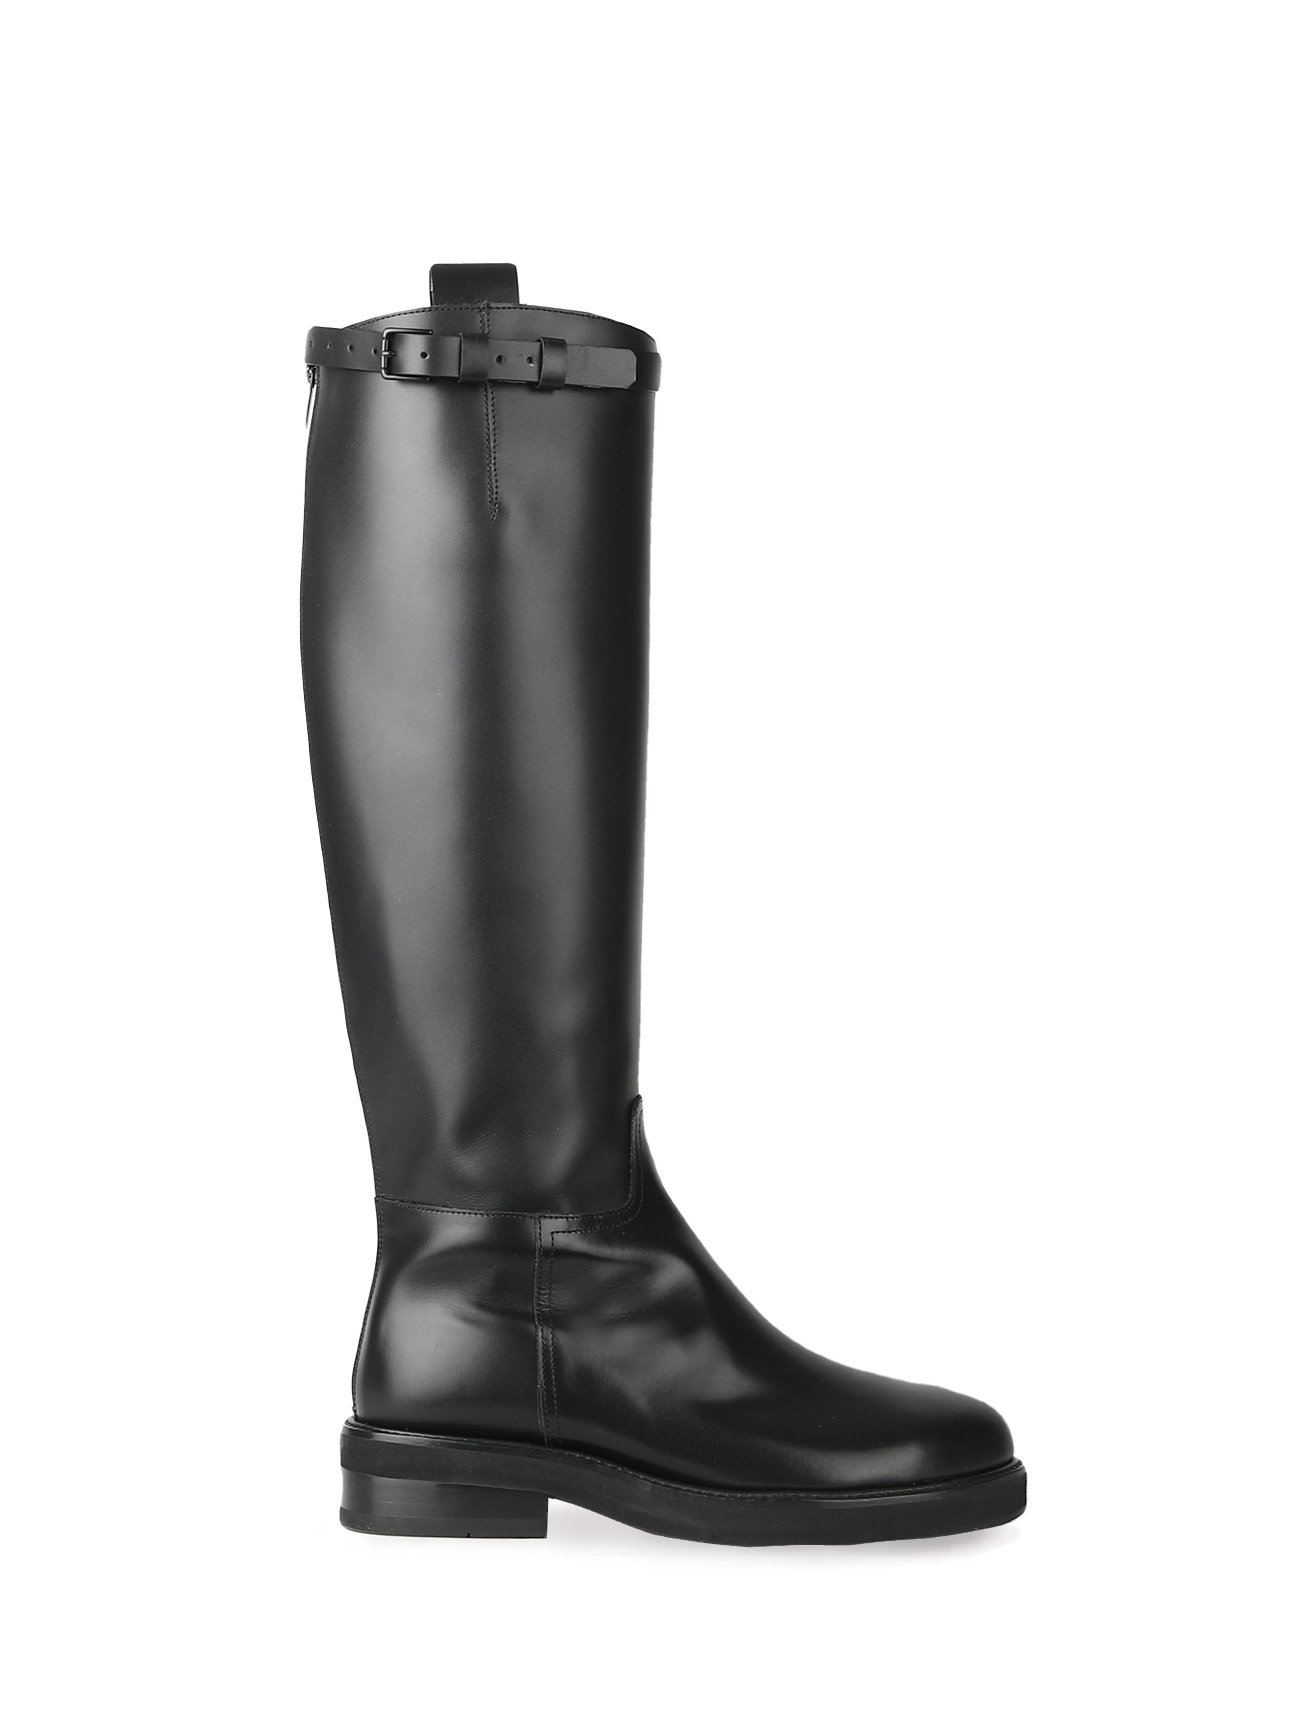 JOY BUCKLE-STRAP LEATHER BOOTS - BLACK (4cm)